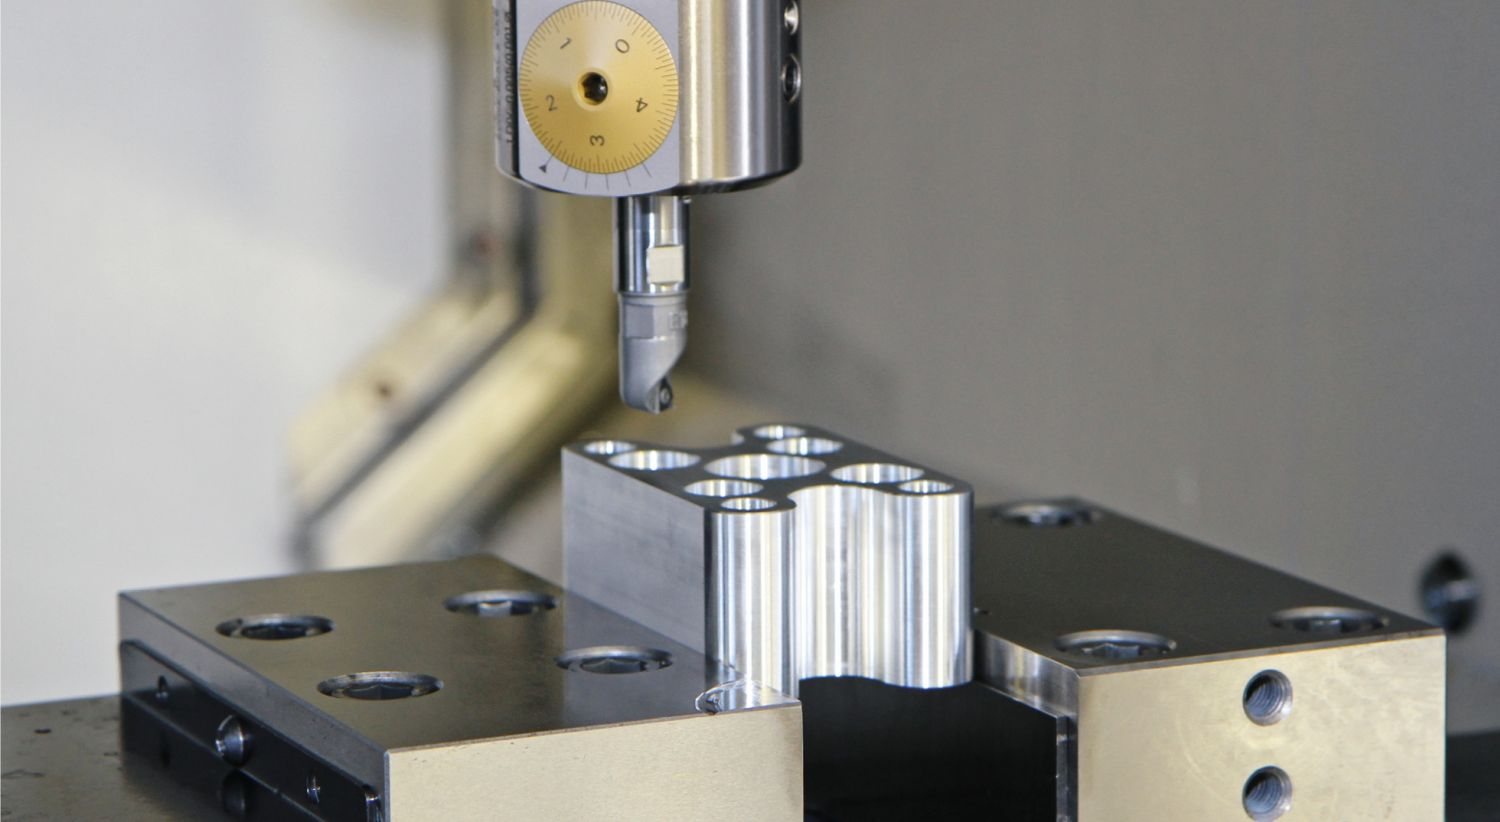 Milling / sample production